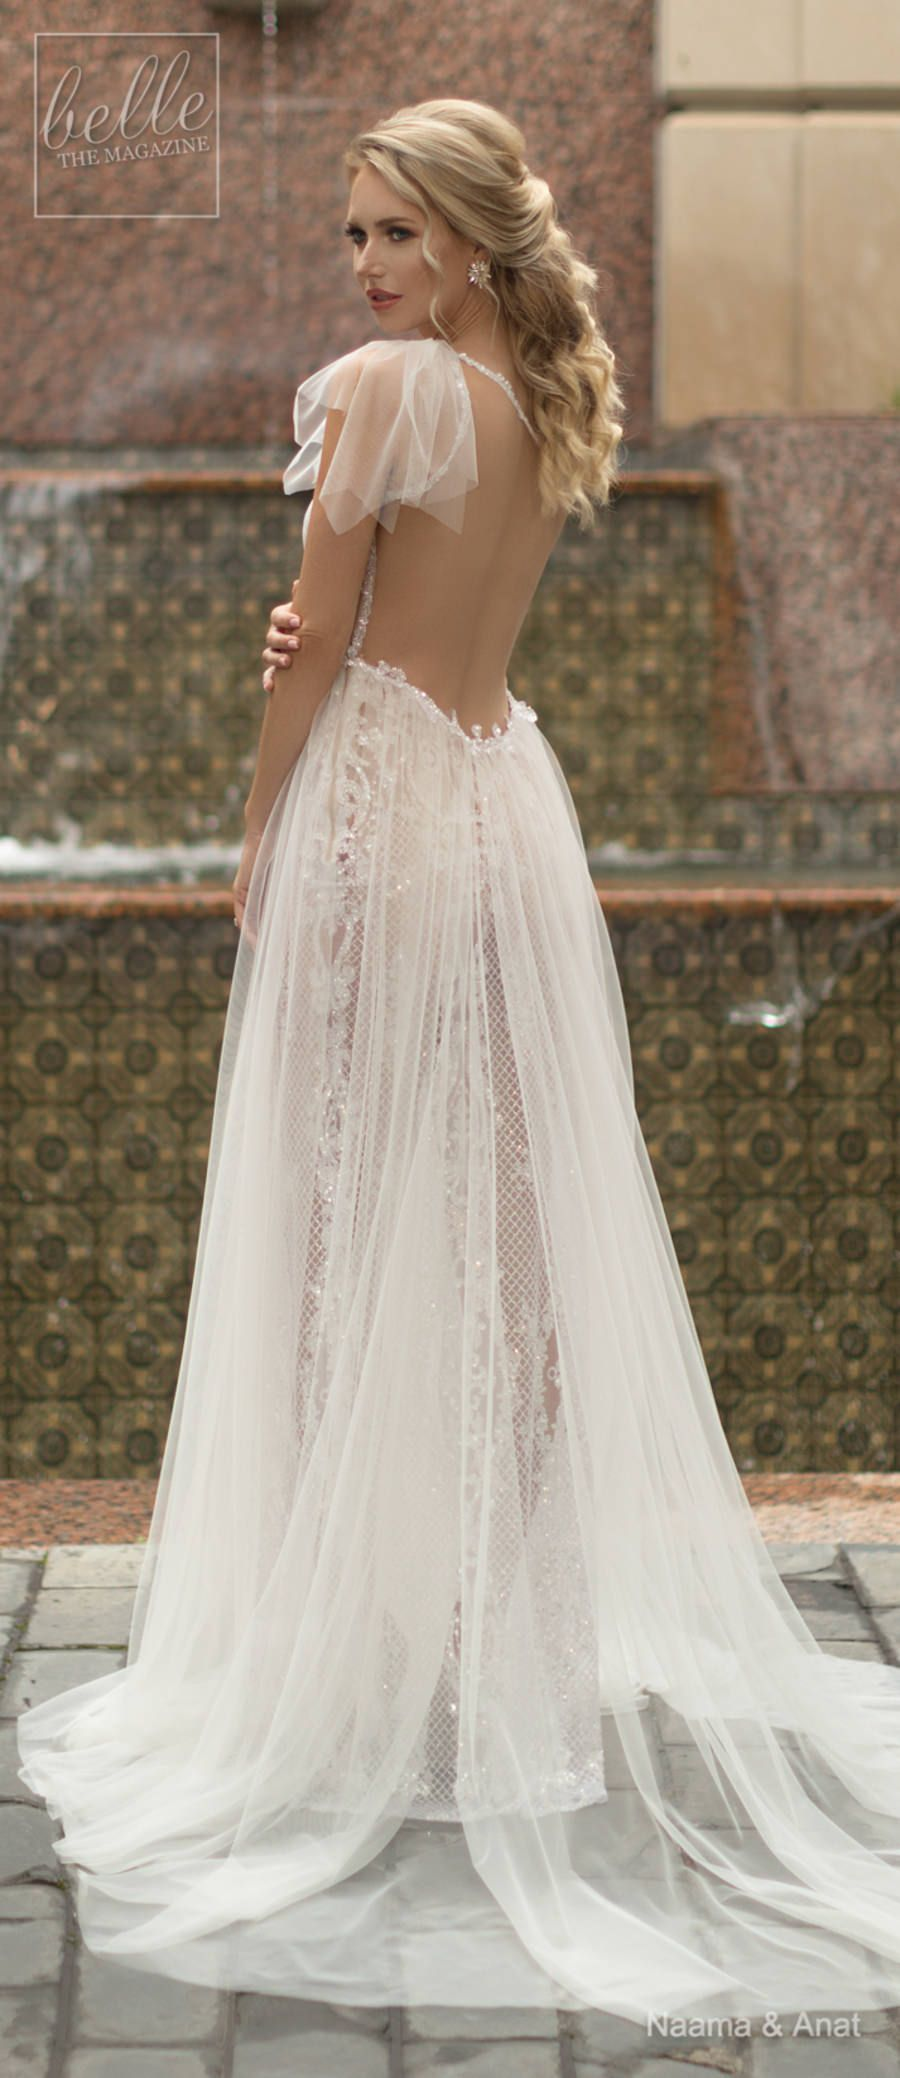 Naama and anat wedding dress collection dancing up the aisle